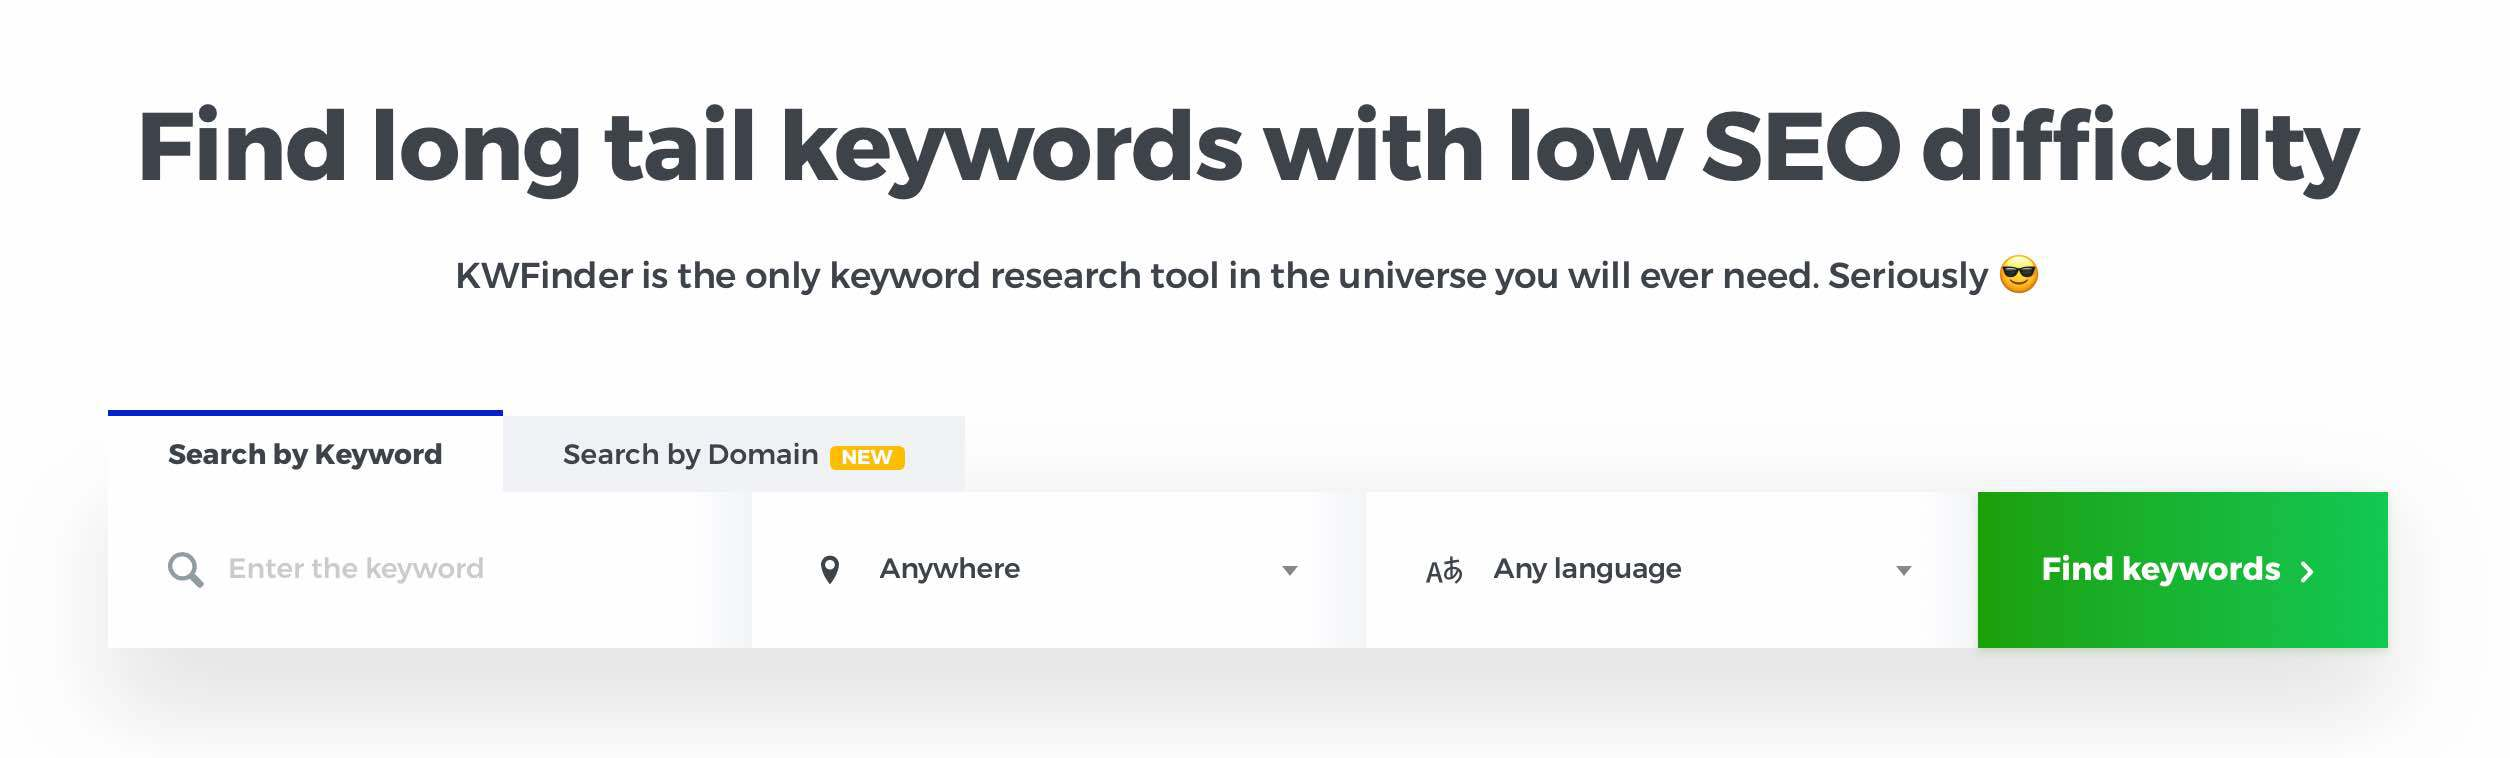 Find long tail keywords with low SEO difficulty